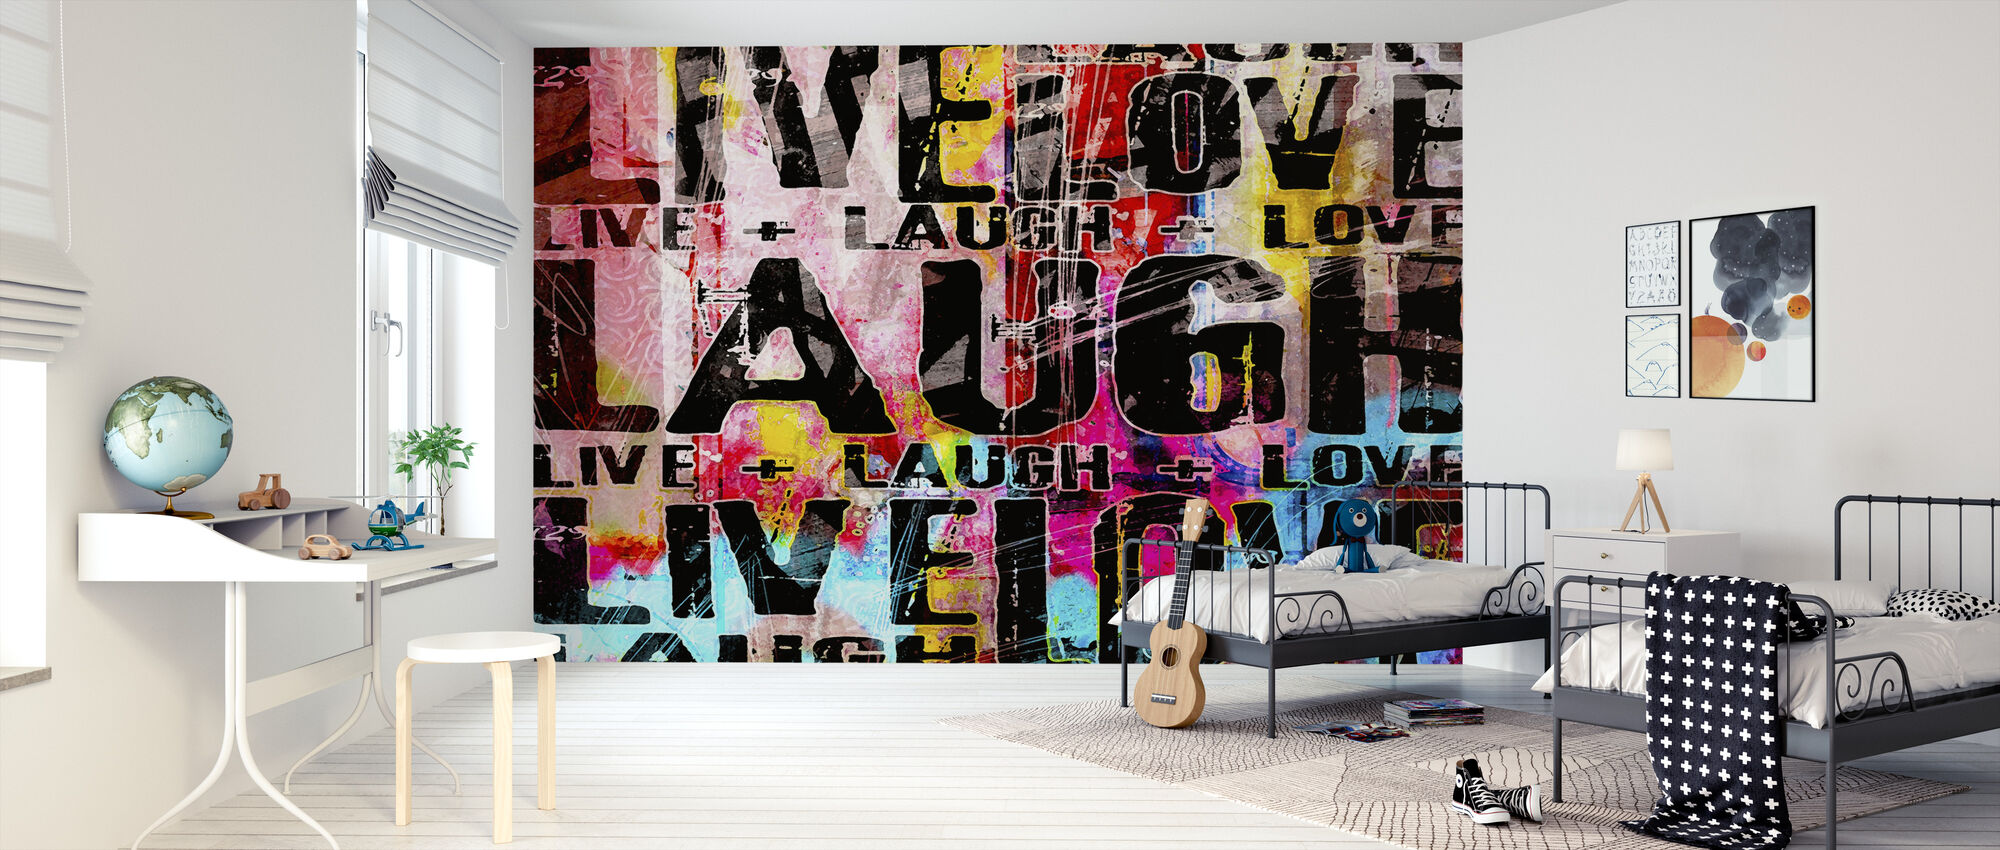 Live Laugh Love - Wallpaper - Kids Room